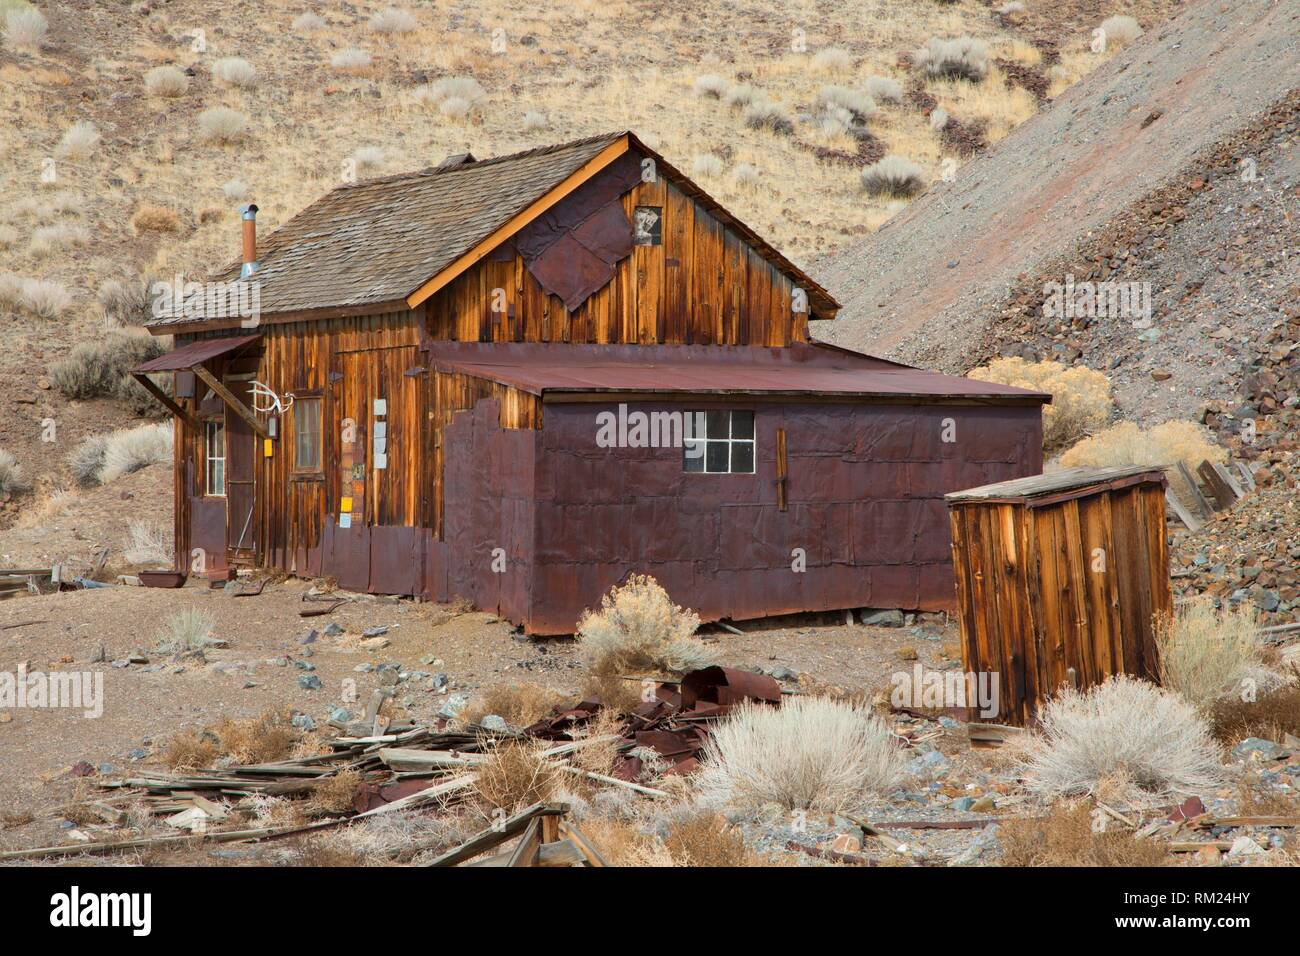 Stagecoach Stop (Tieffel's Cabin), Berlin-Icthyosaur State Park, Nevada. - Stock Image